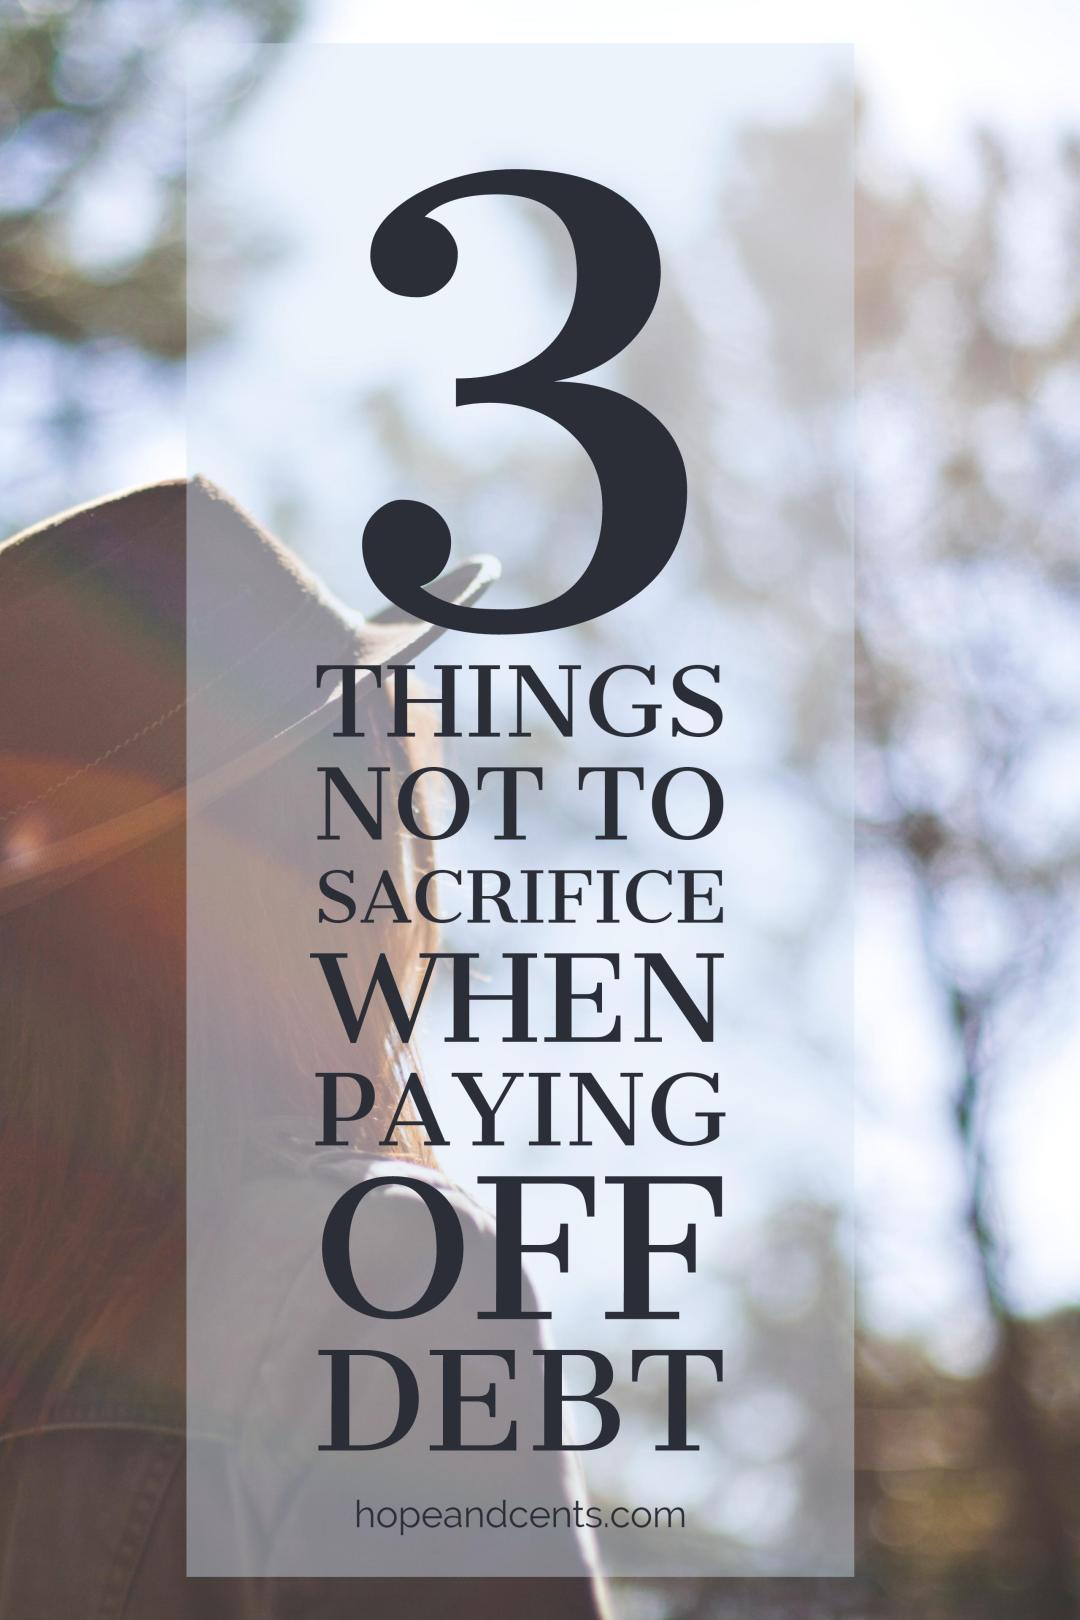 If you are not careful, there are some things that you may sacrifice and say no to without intending to while paying off debt. In fact, you will need to go out of your way to prioritize these three things. Otherwise, you may look back at your journey and realize you lost more than just the debt. #debt #personalfinance #money #moneytips